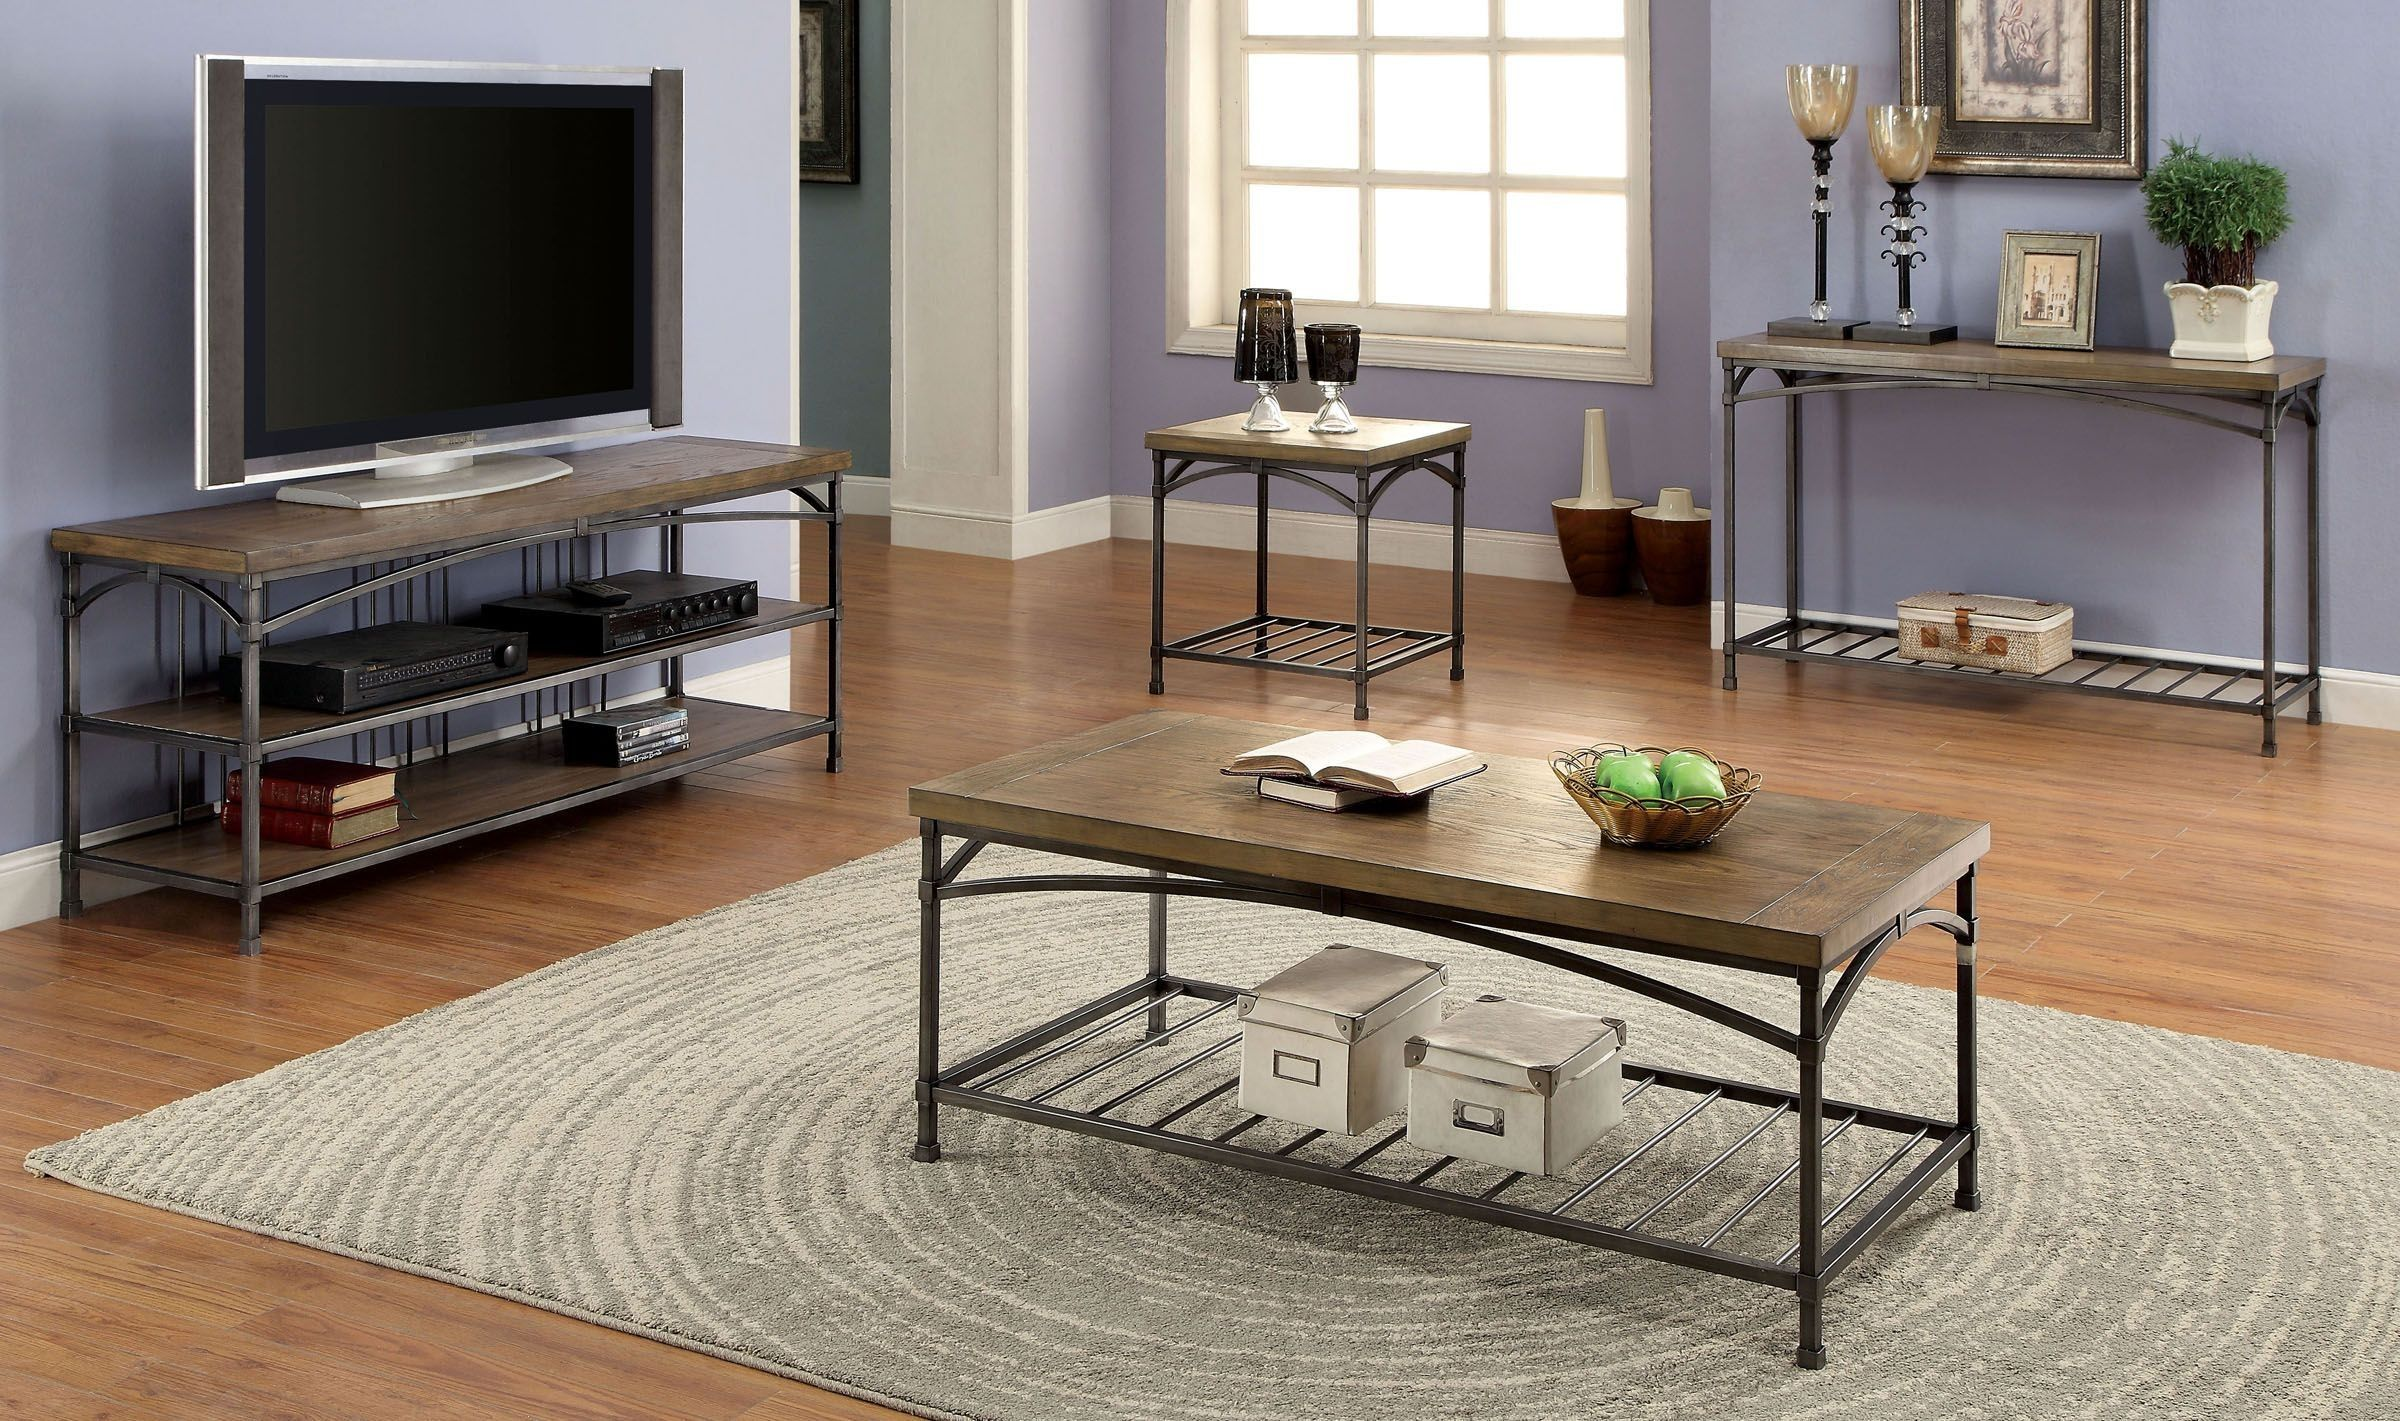 Wylde I Natural Occasional Table Set Cm4223c Furniture Of America Coffee Table 4 Piece Coffee Table Set Coffee Table And Side Table Set [ 1421 x 2400 Pixel ]